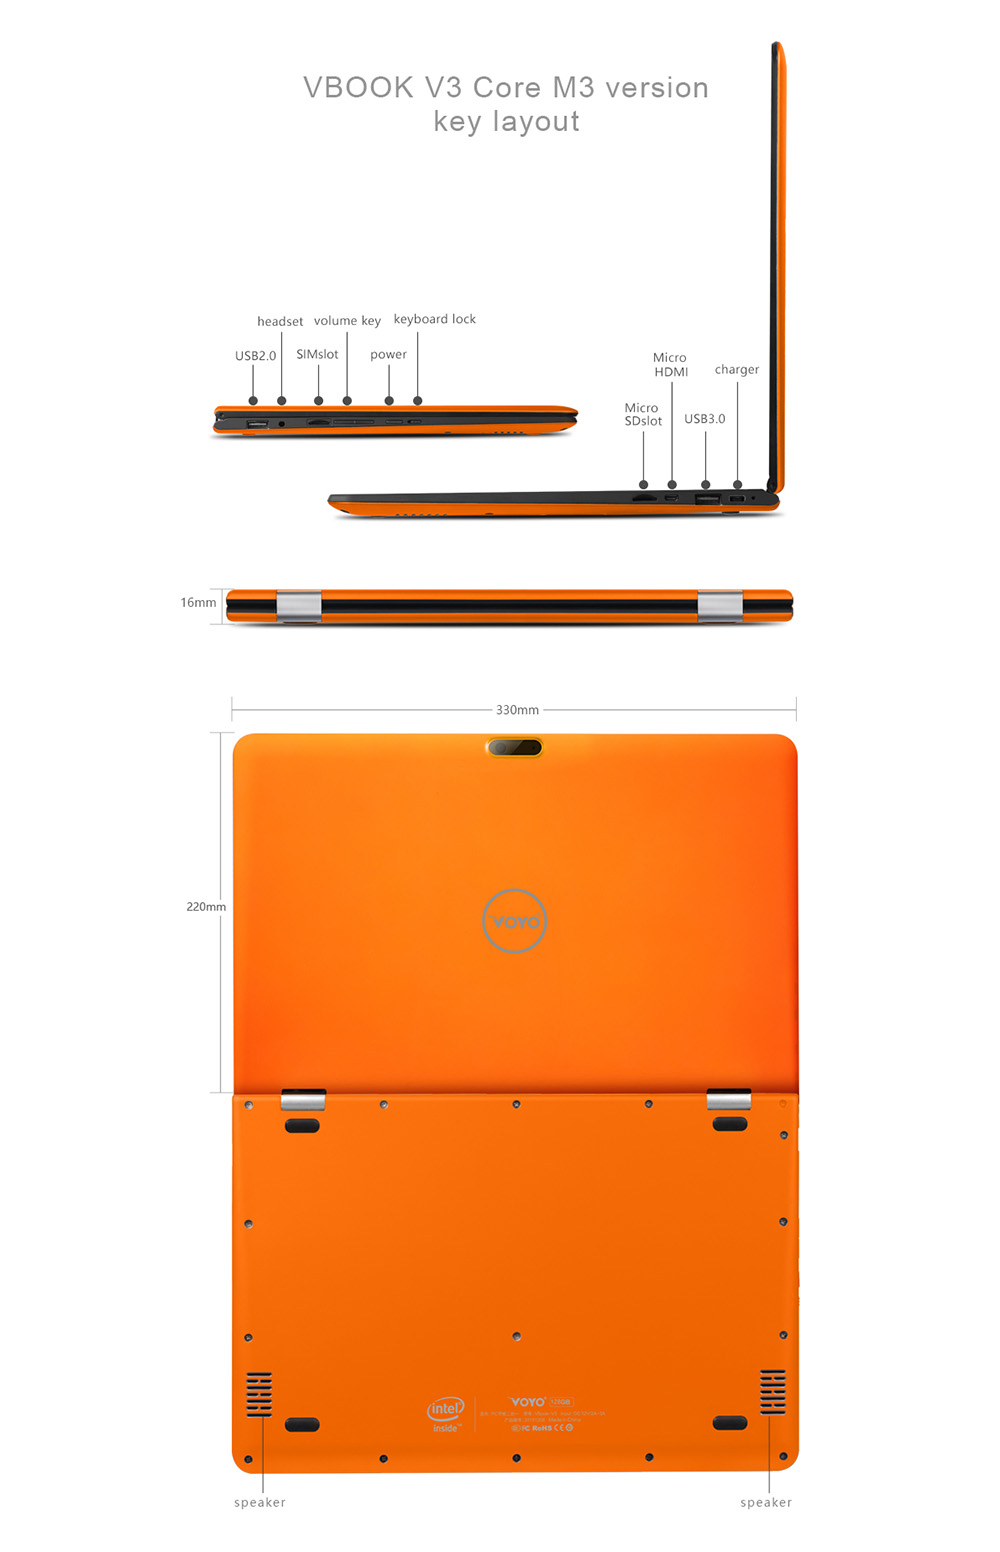 VOYO VBook V3 Flagship 13.3 inch Windows 10 Ultrabook FHD Screen Intel Core M3-6Y30 Dual Core 4GB RAM 128GB SSD ROM Bluetooth 4.0 Dual Cameras